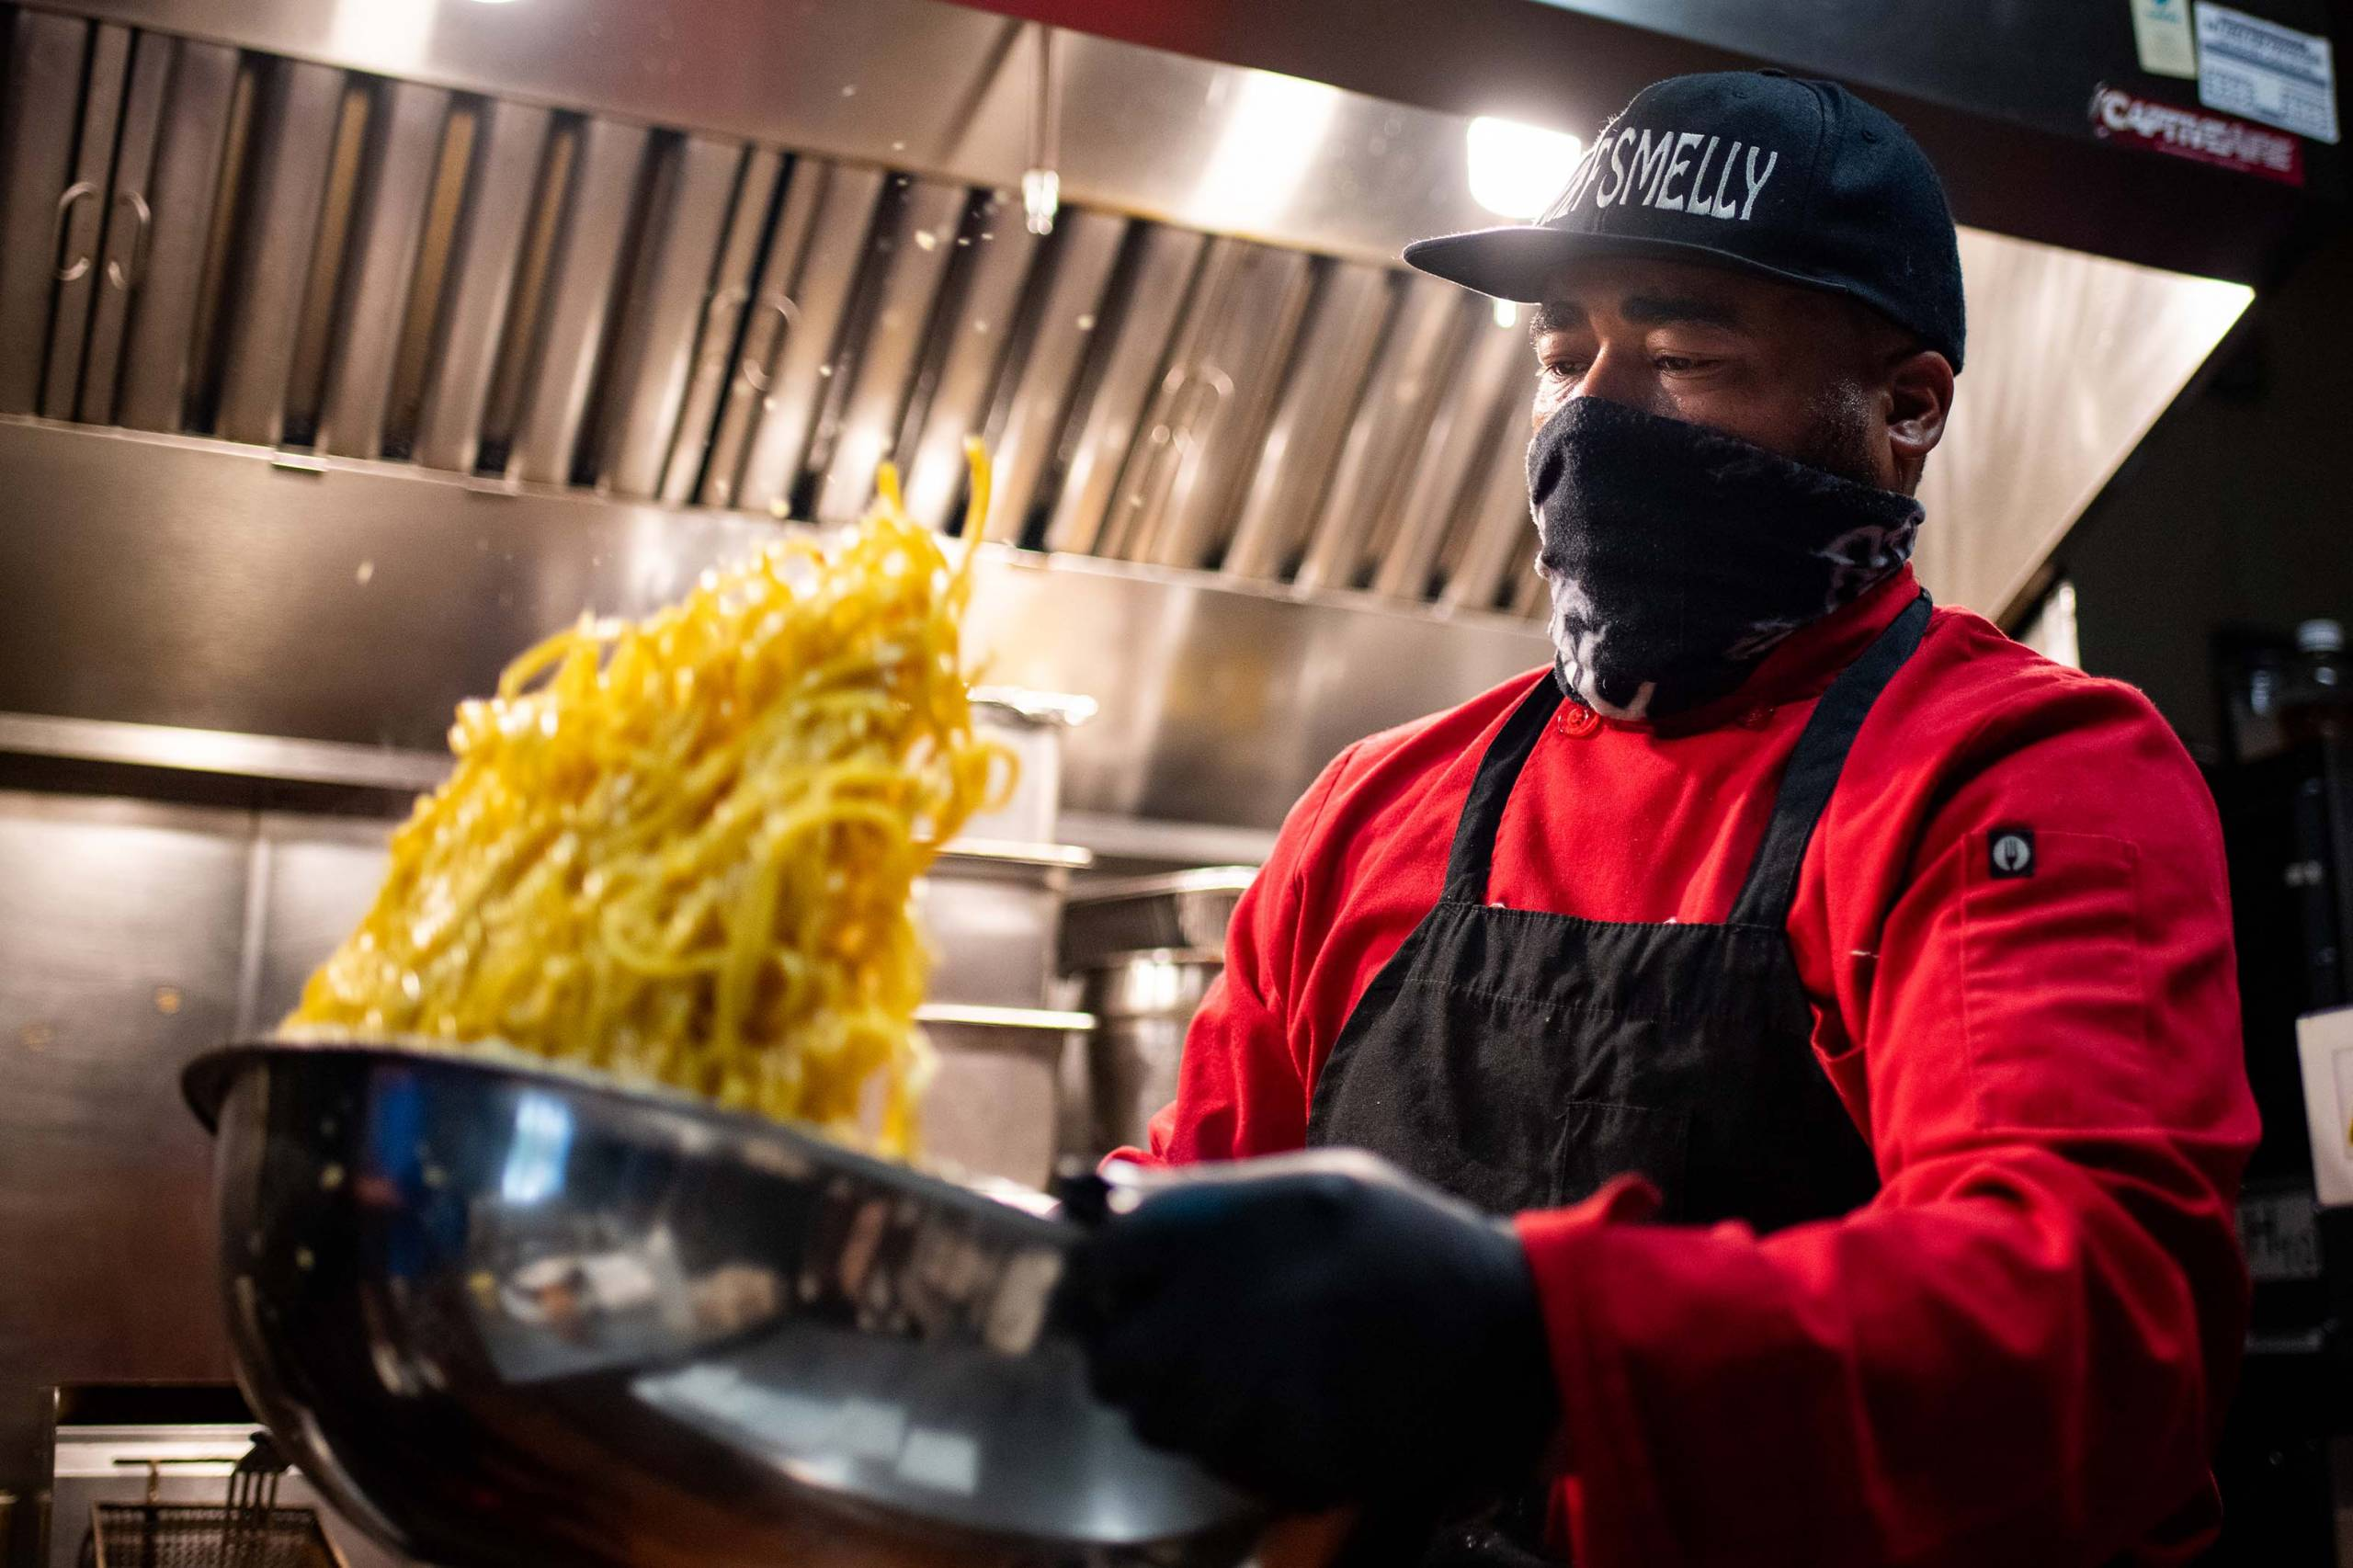 Chef Edward Wooley tosses a batch of garlic noodles in a large metal bowl.